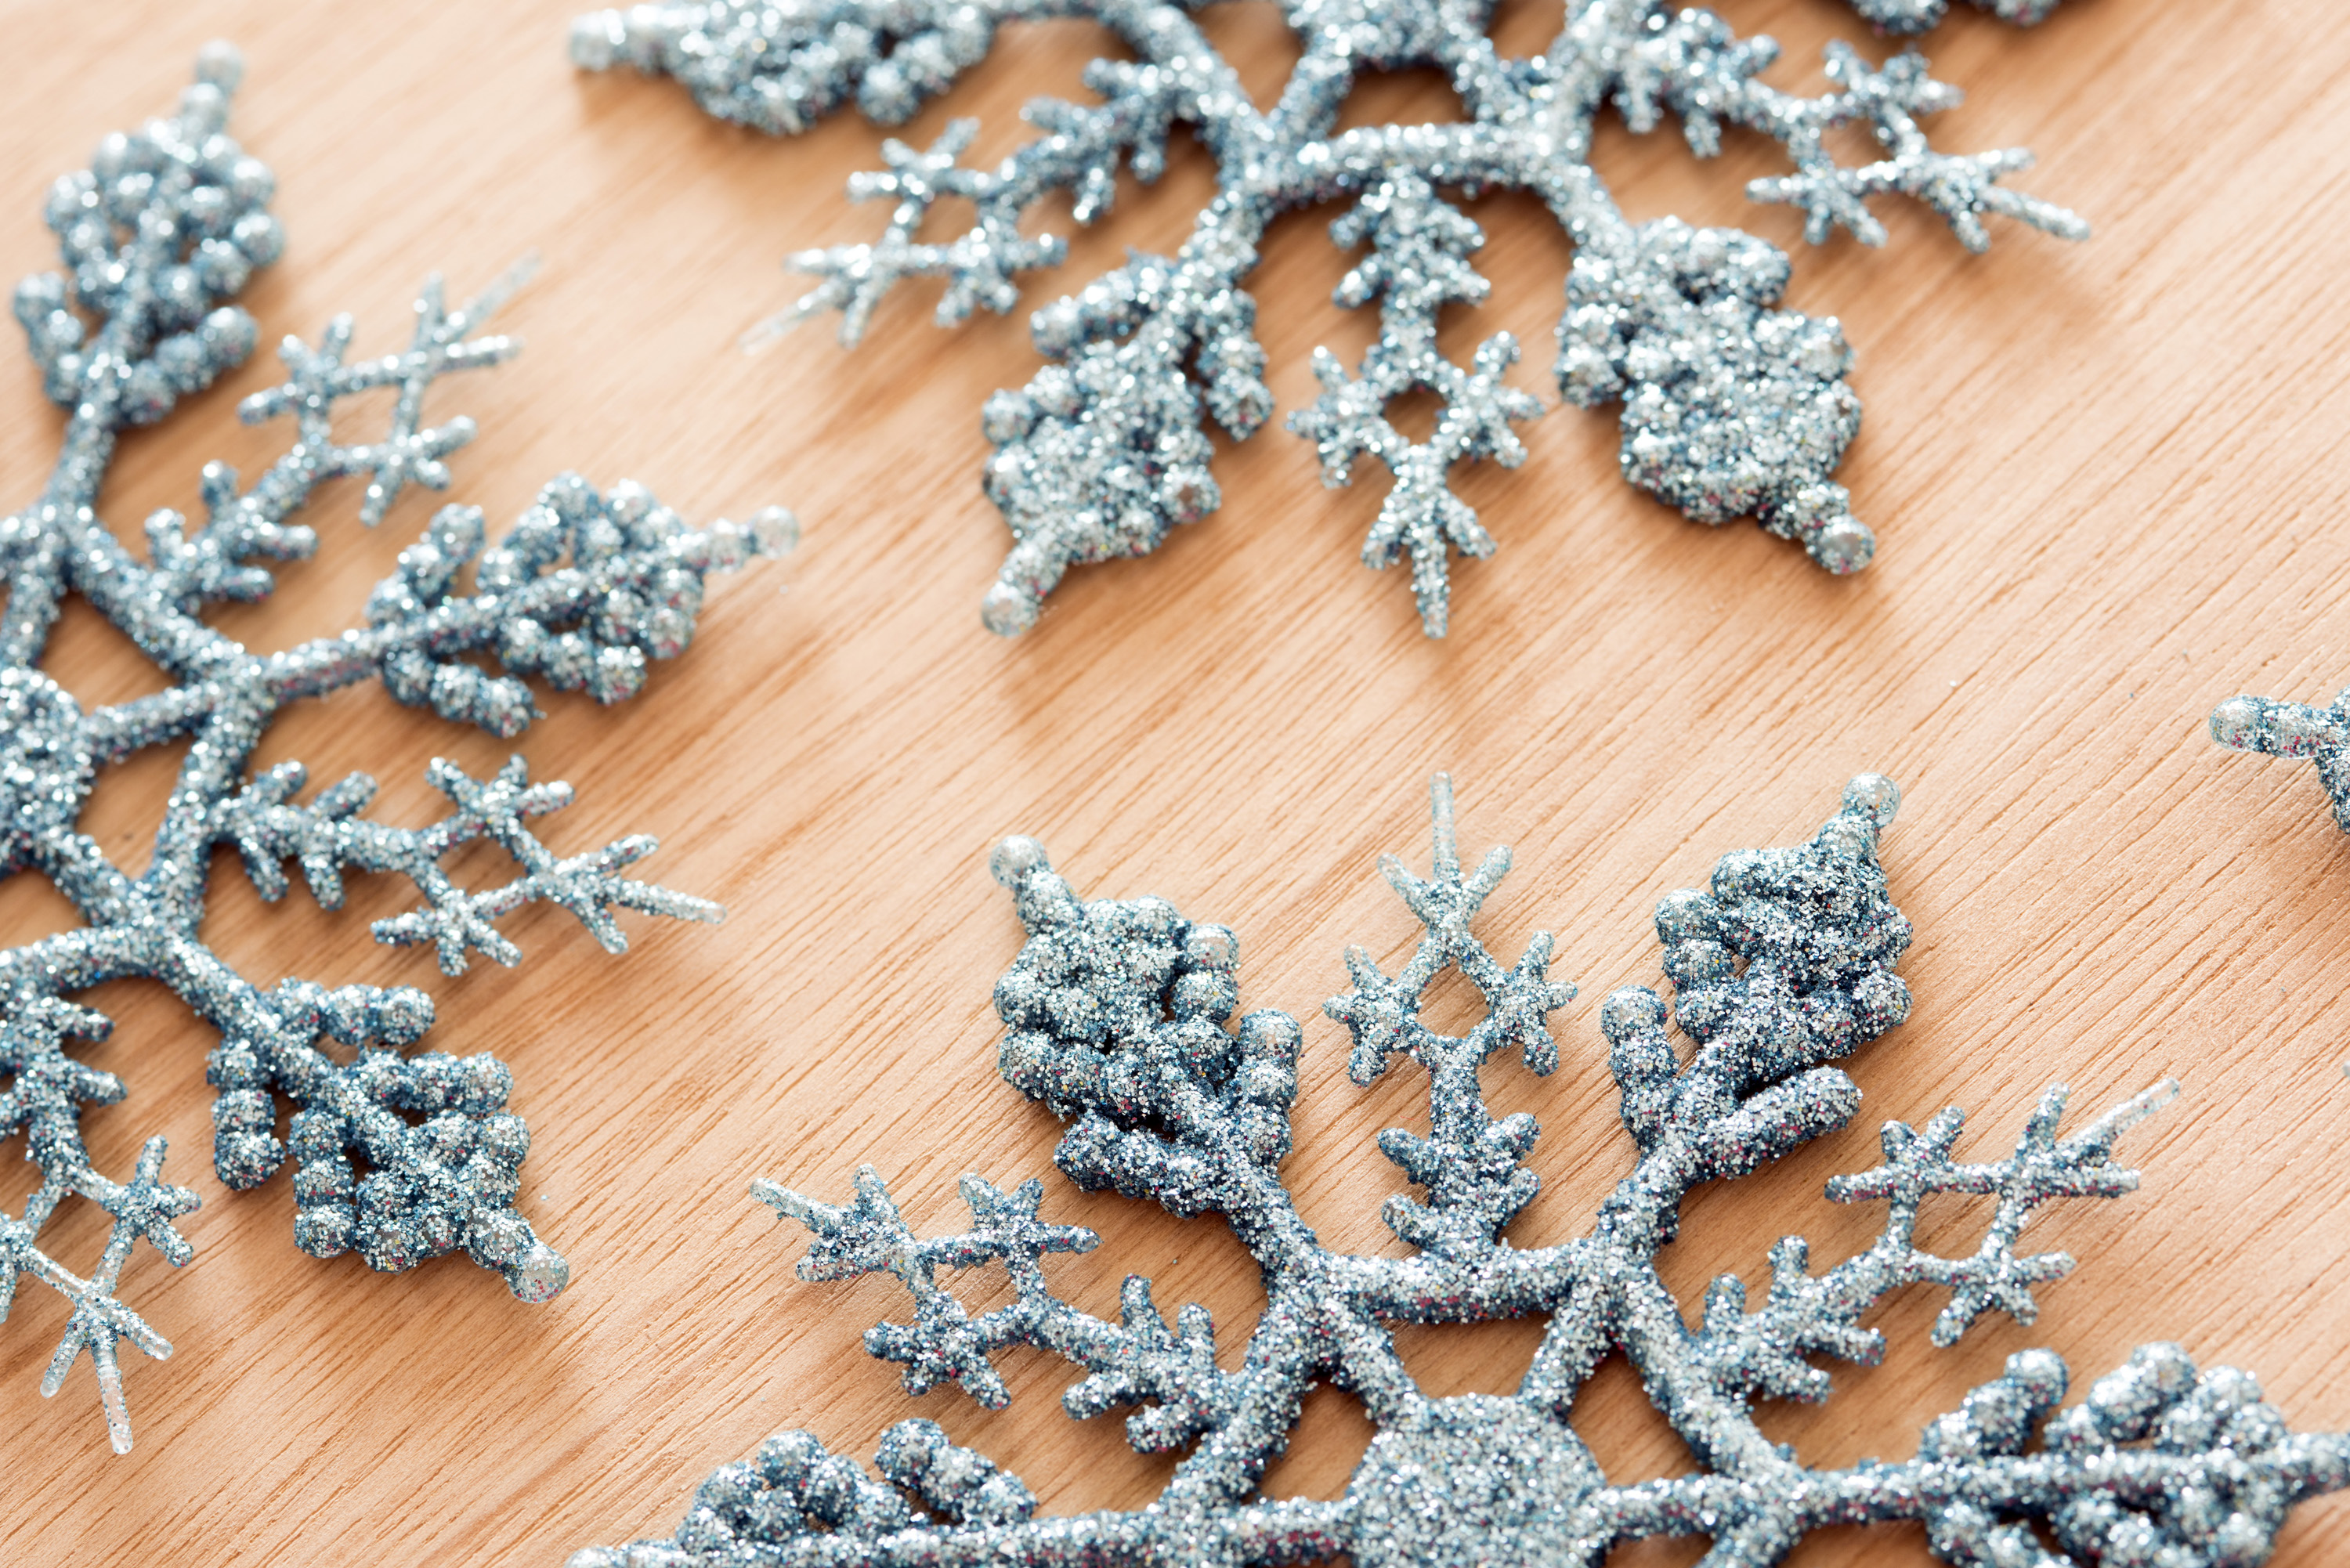 Tasteful ornamental blue glitter snowflake decorations for Christmas celebrations arranged on a wooden background in a high angle view